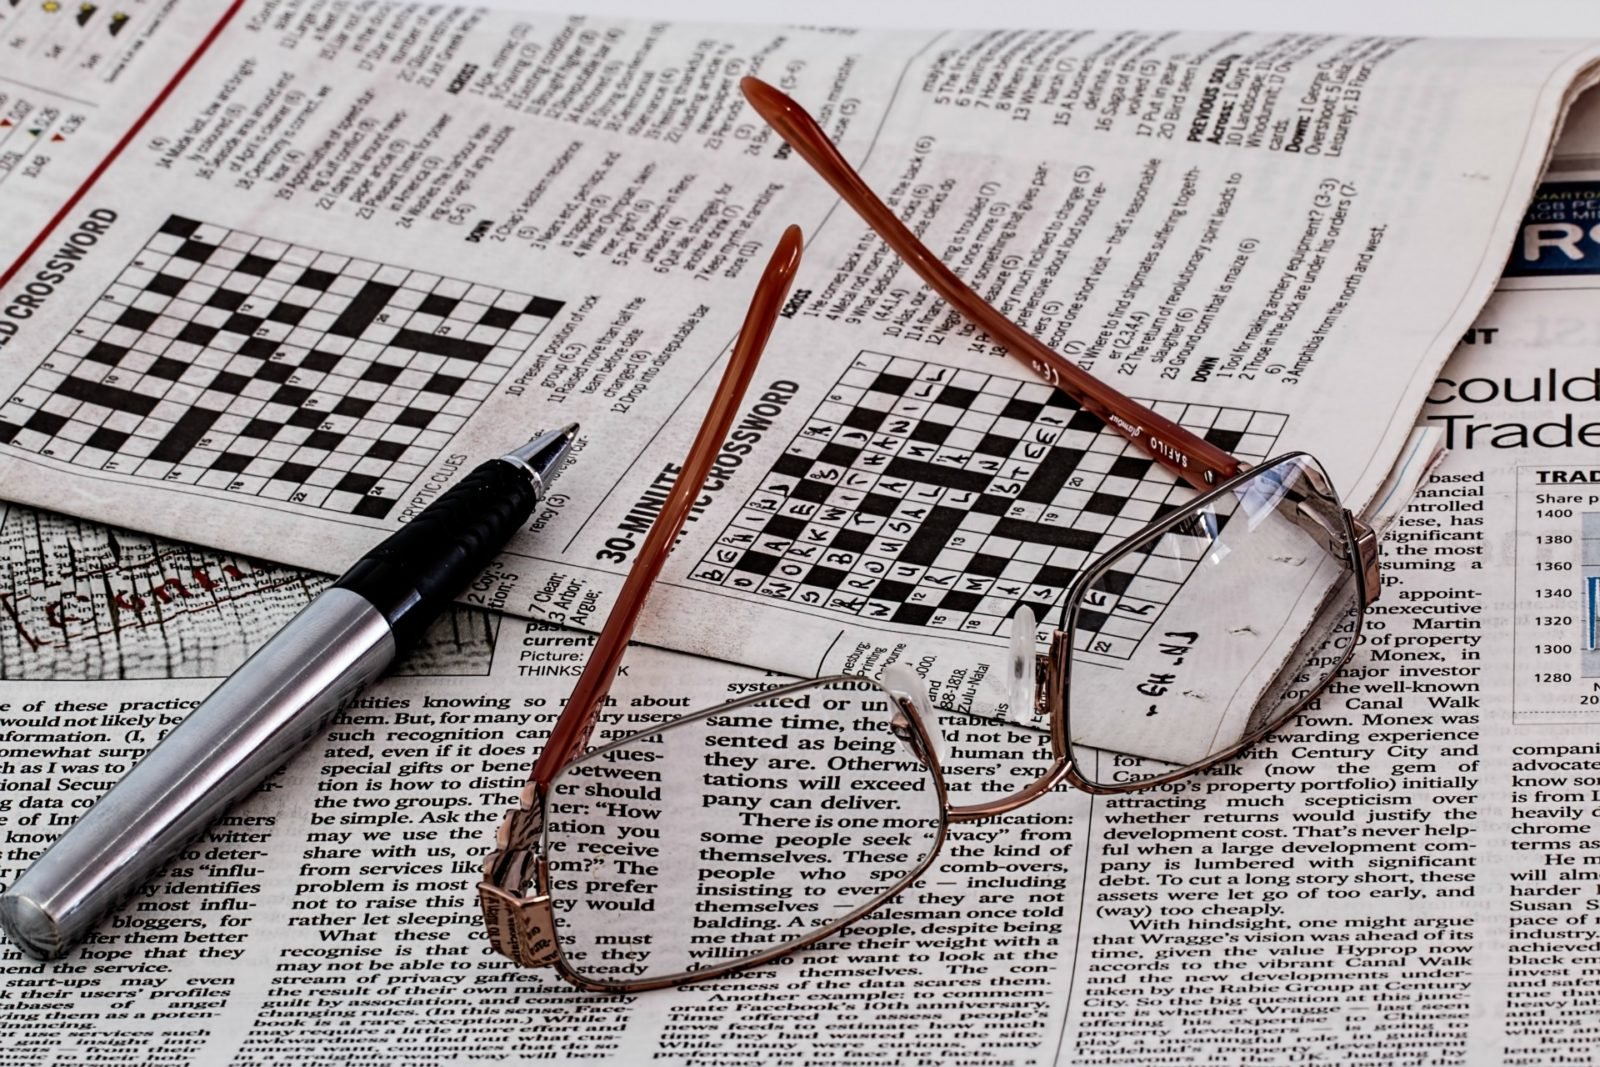 Brain exercises may offer small benefit to those with dementia.